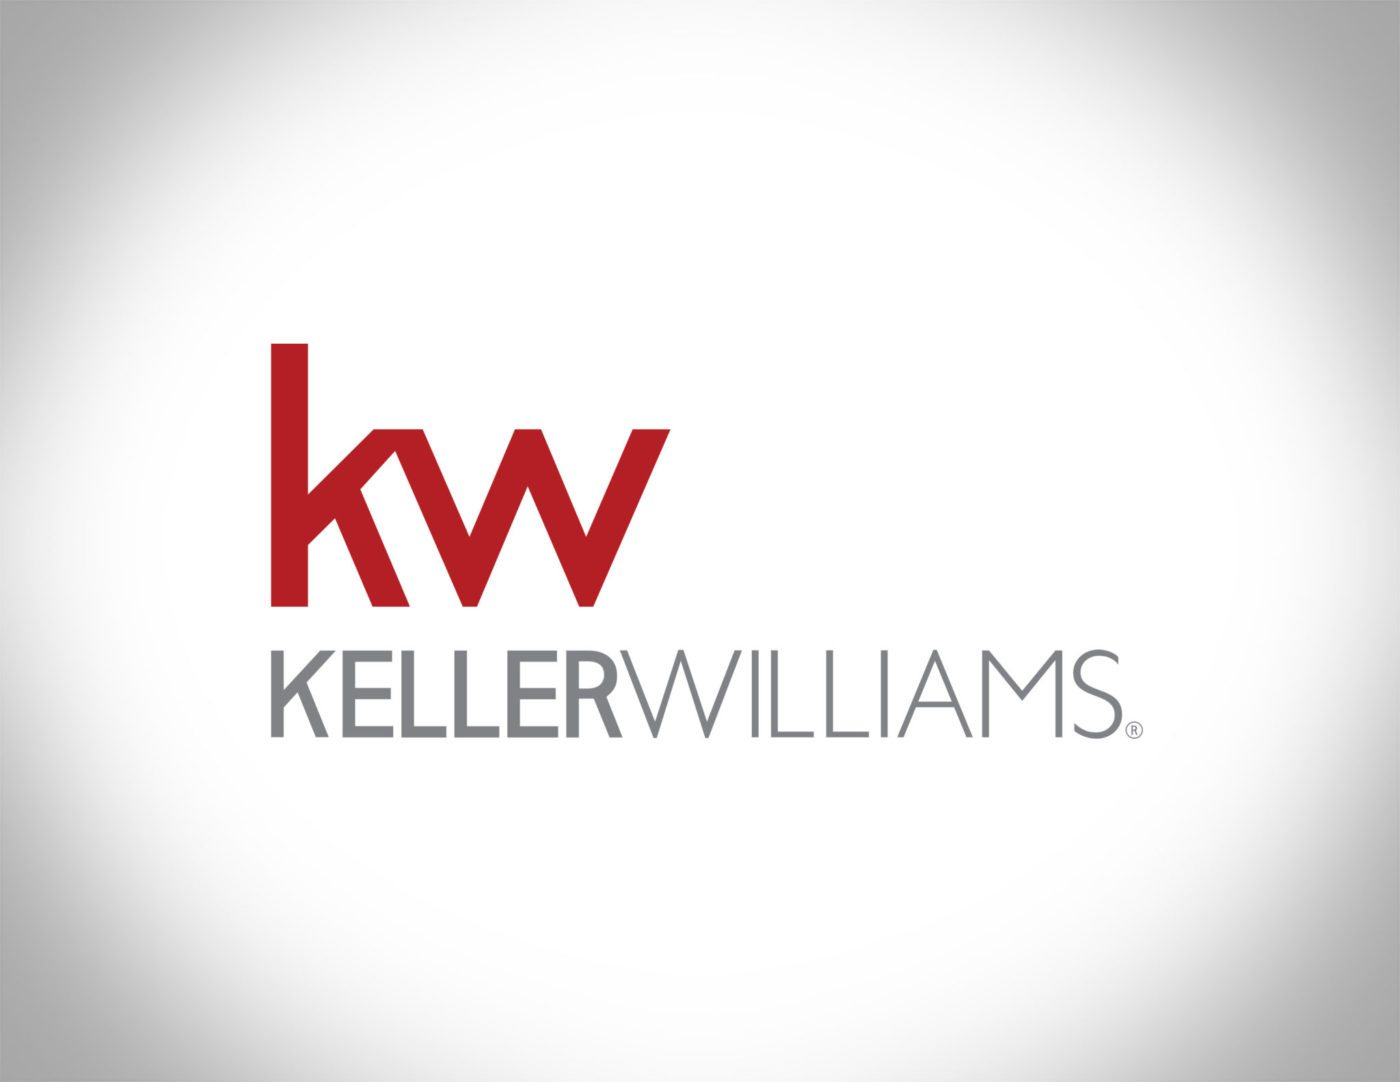 Keller Williams rolling out new logo across platforms, products and tools